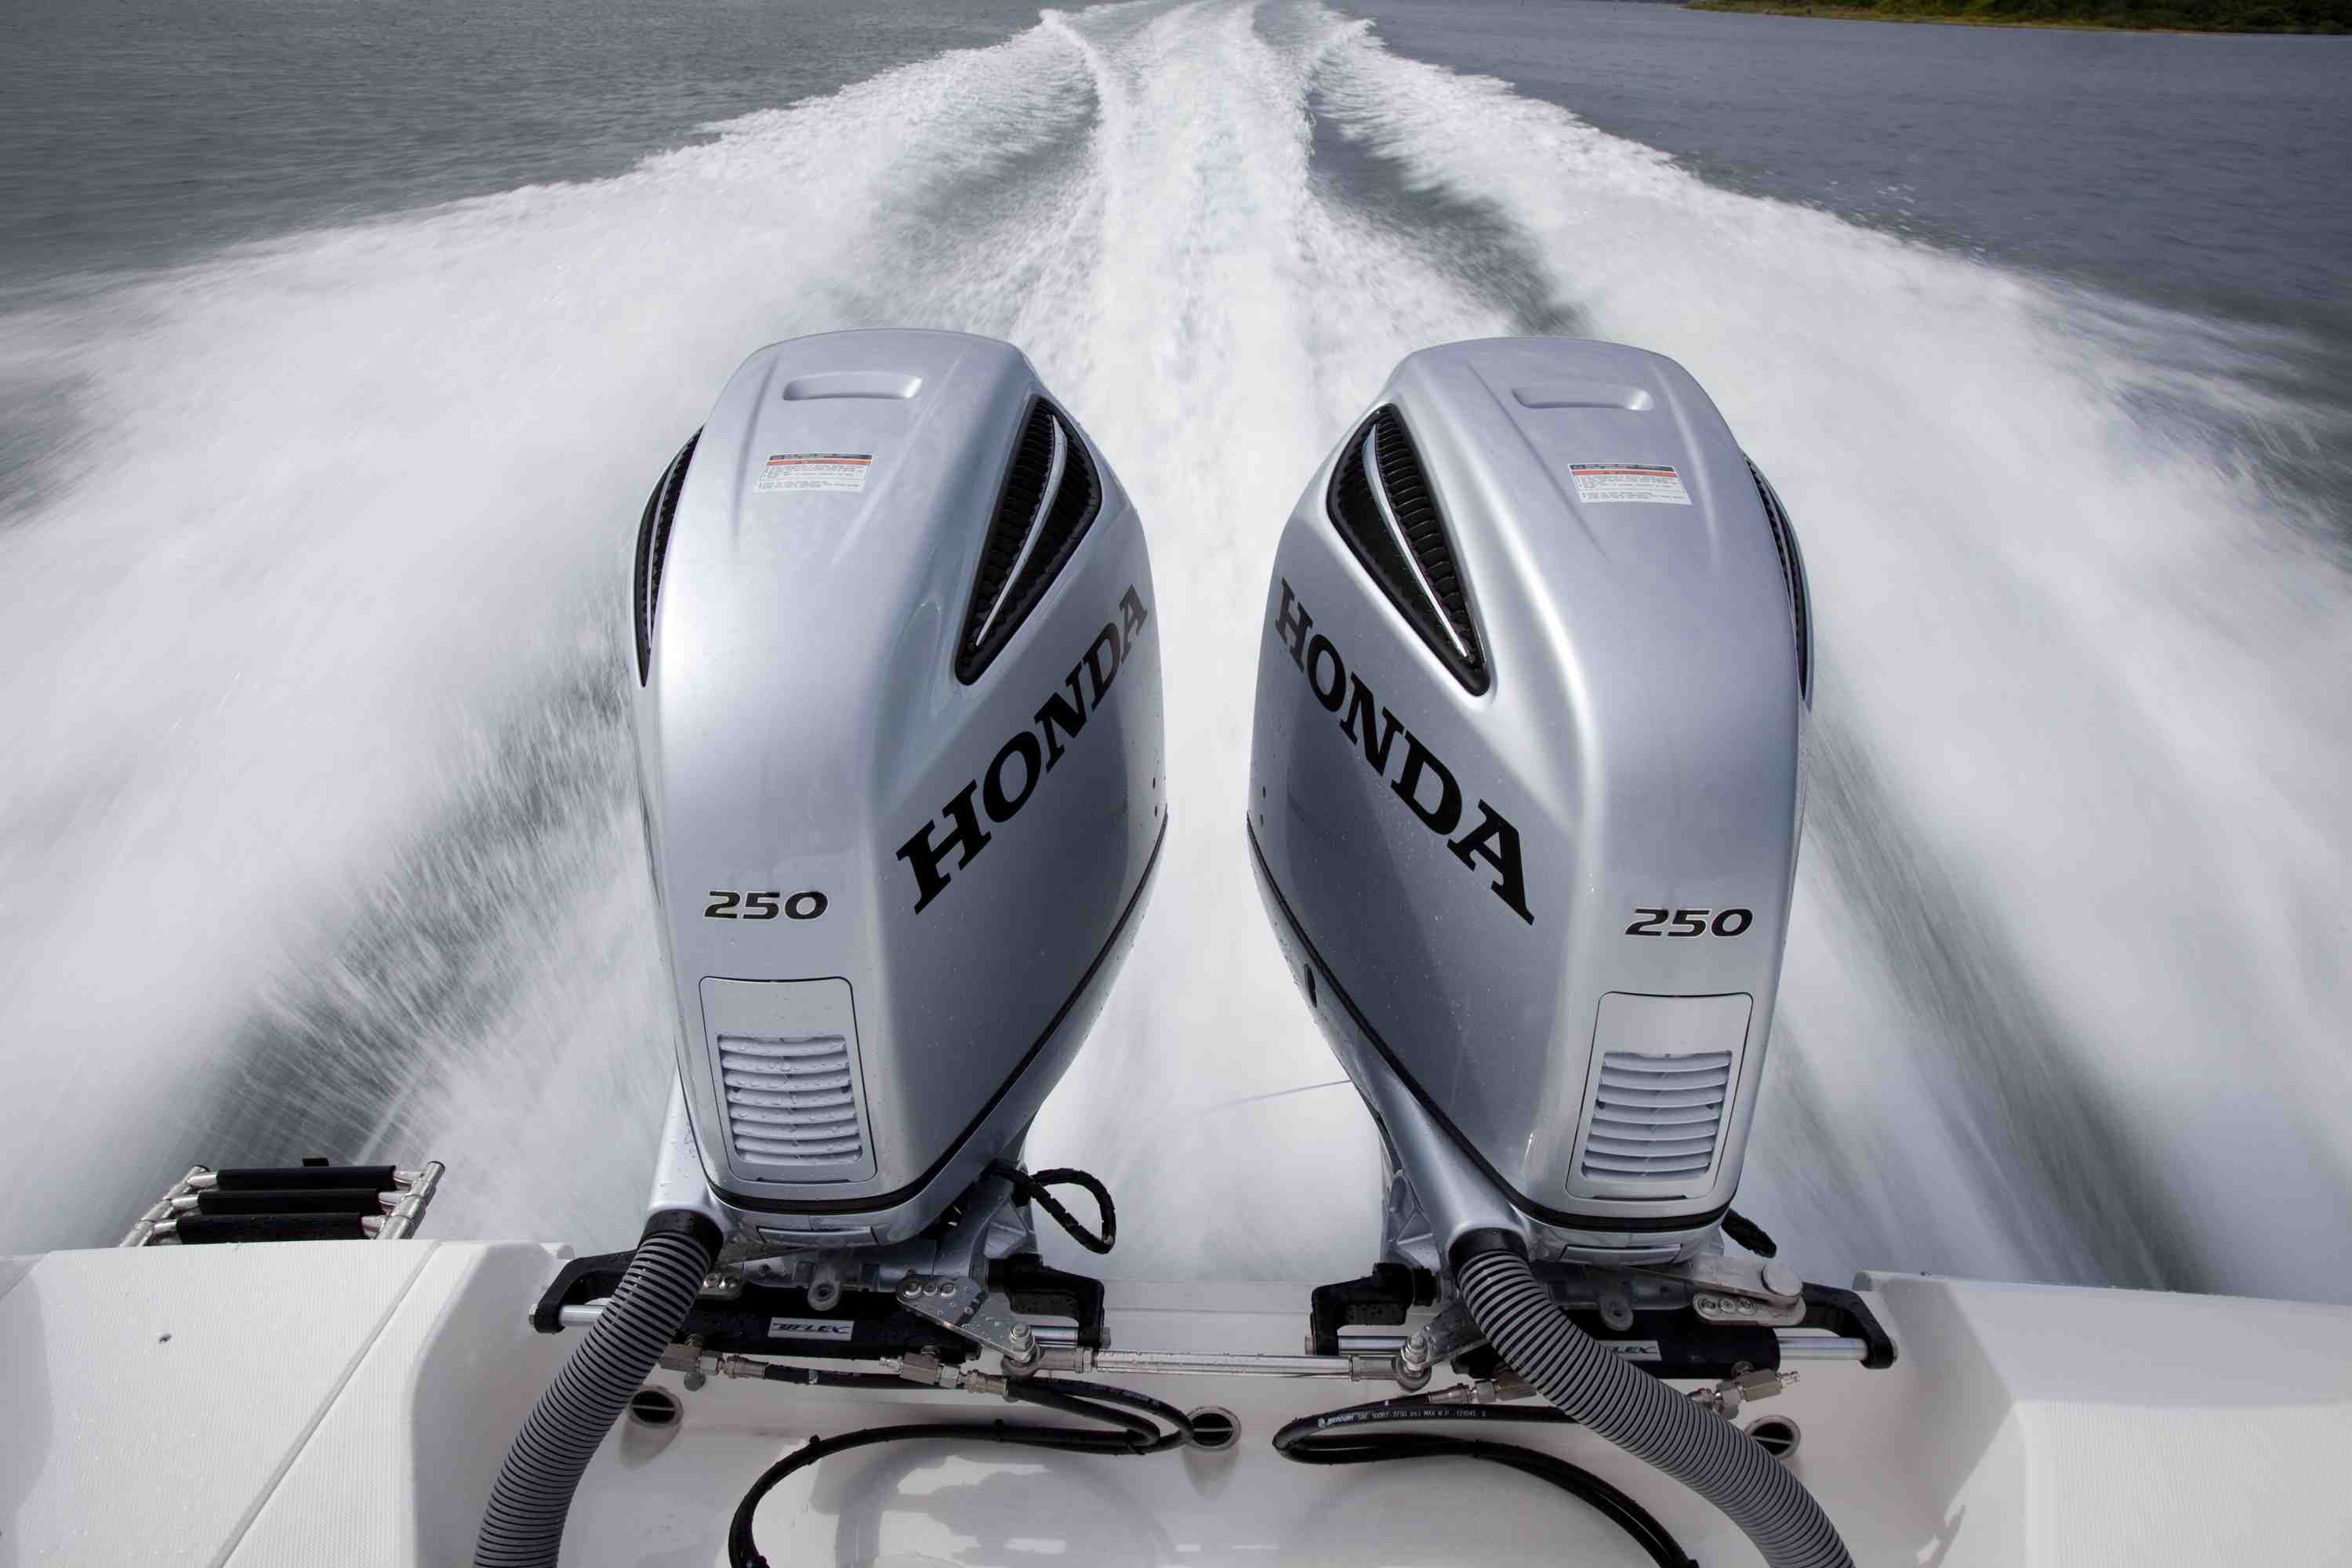 The Outboard Paint Shop - Decals for boat motors